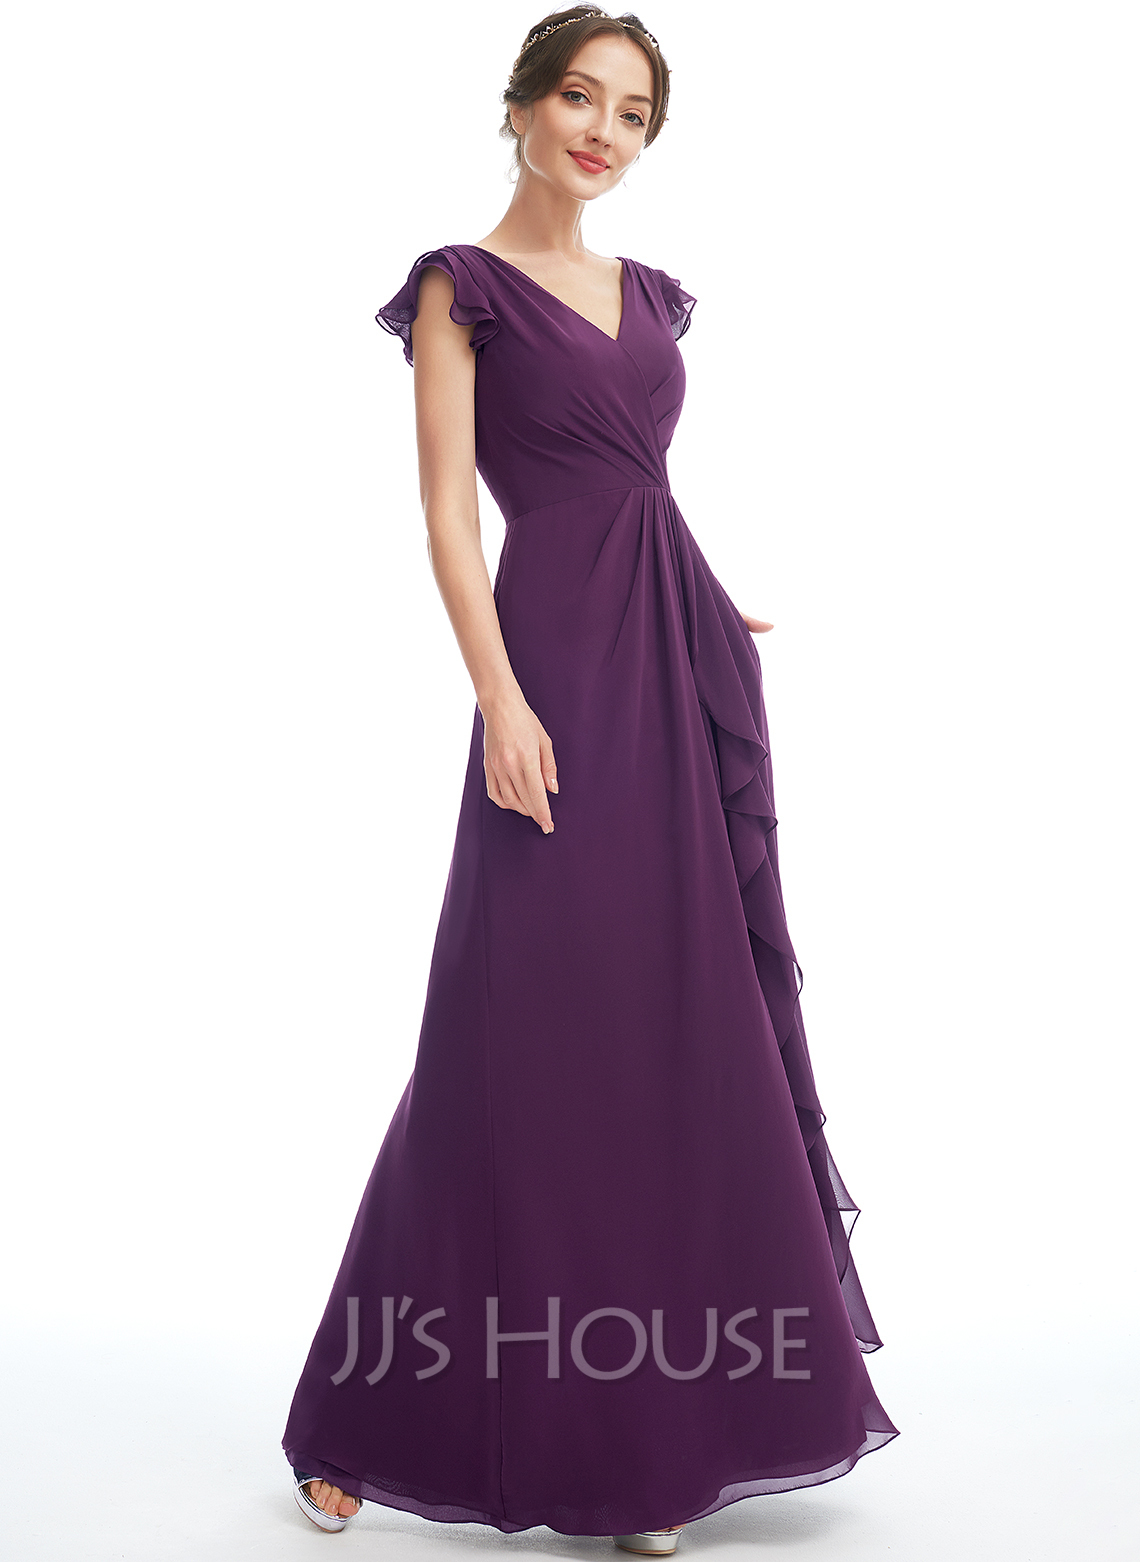 A-Line V-neck Floor-Length Bridesmaid Dress With Ruffle Pockets